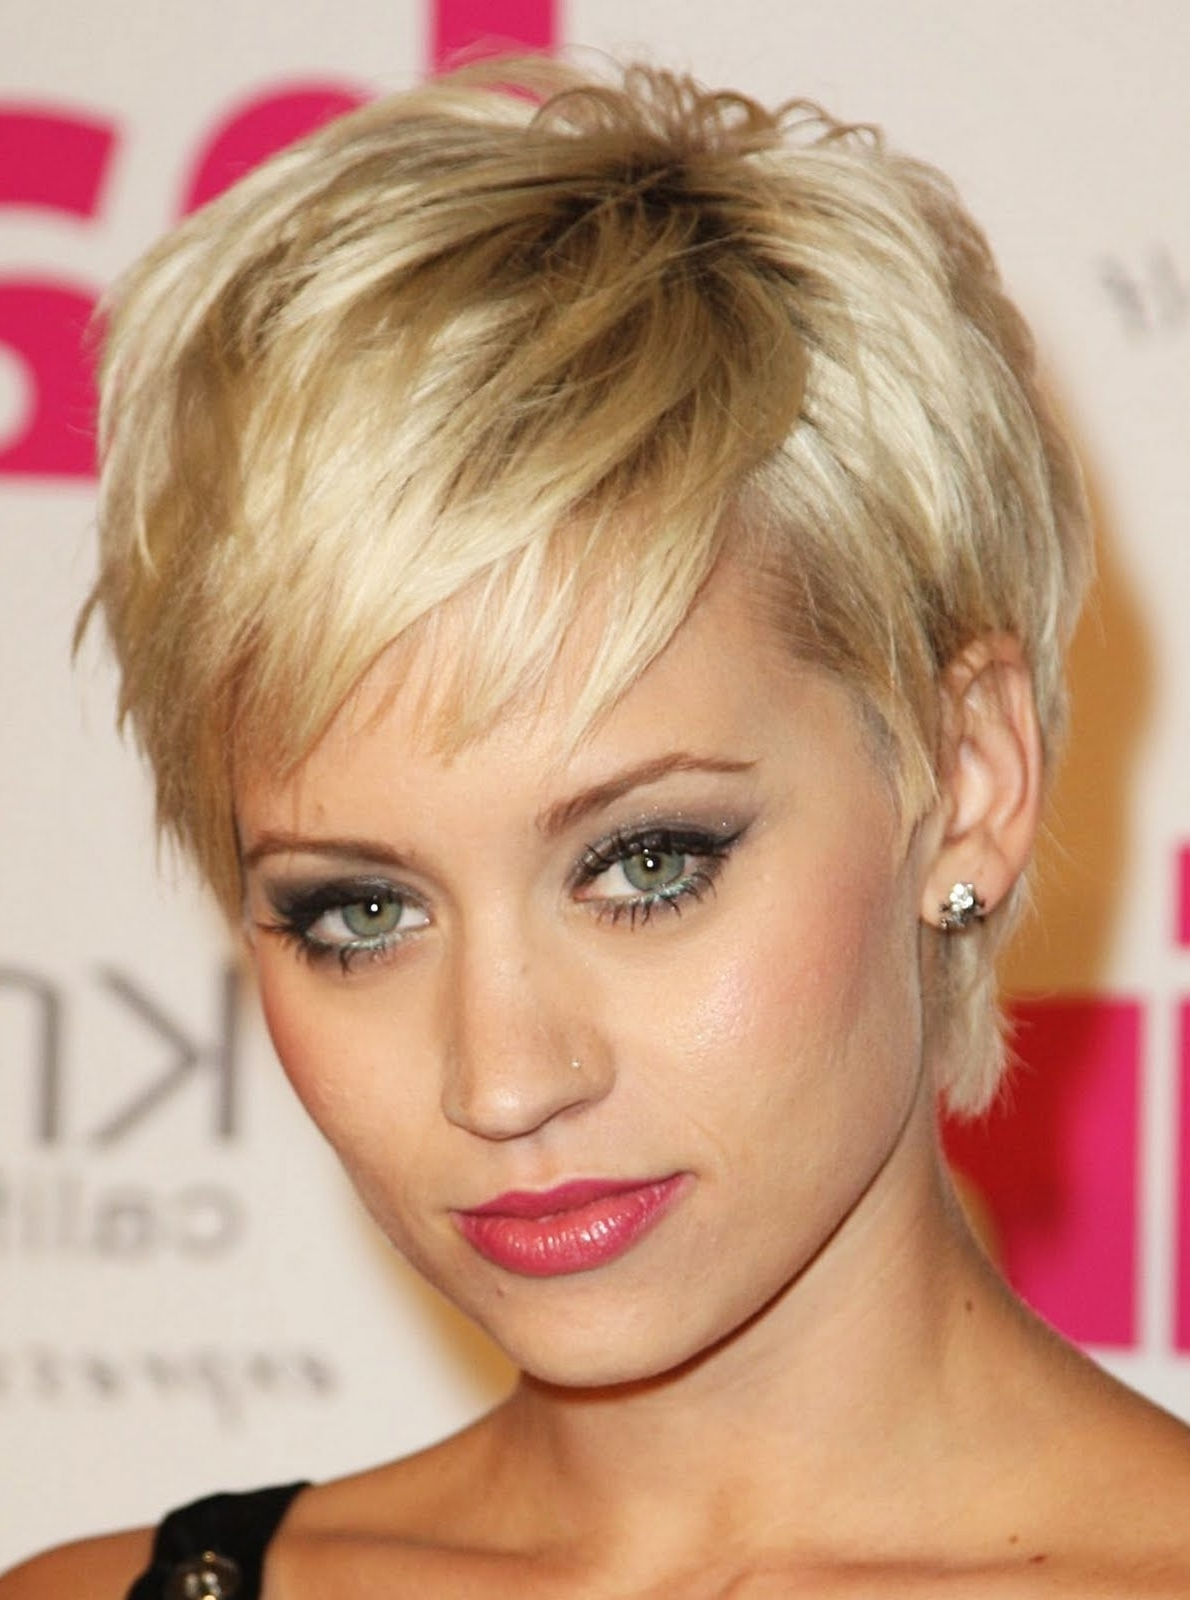 Cute Easy Short Hairstyles For Thin Hair Over 50 Hair Styles With Most Recent Pixie Hairstyles For Thin Fine Hair (View 6 of 15)